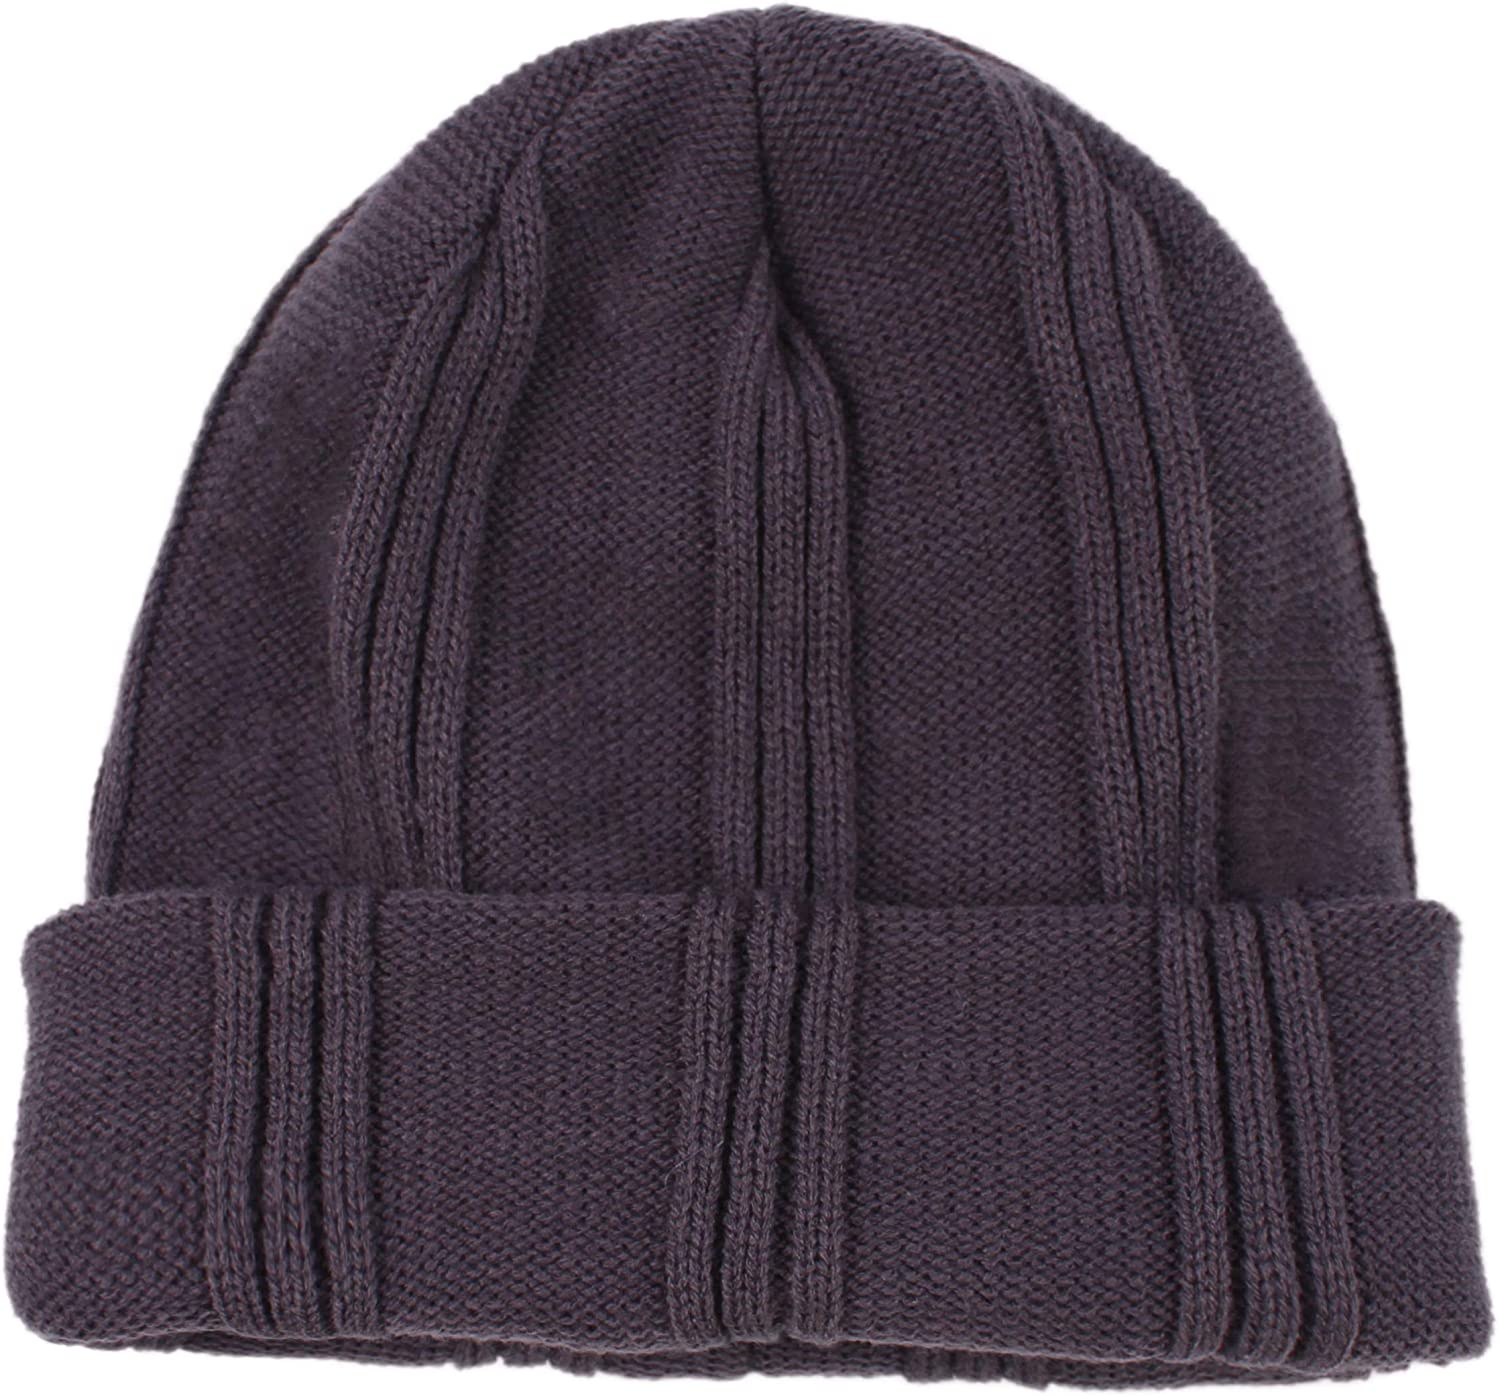 LANGZHEN Daily Winter hat for Men,Cable /Knit Warm Beanie Cap Thick Snow Hats/